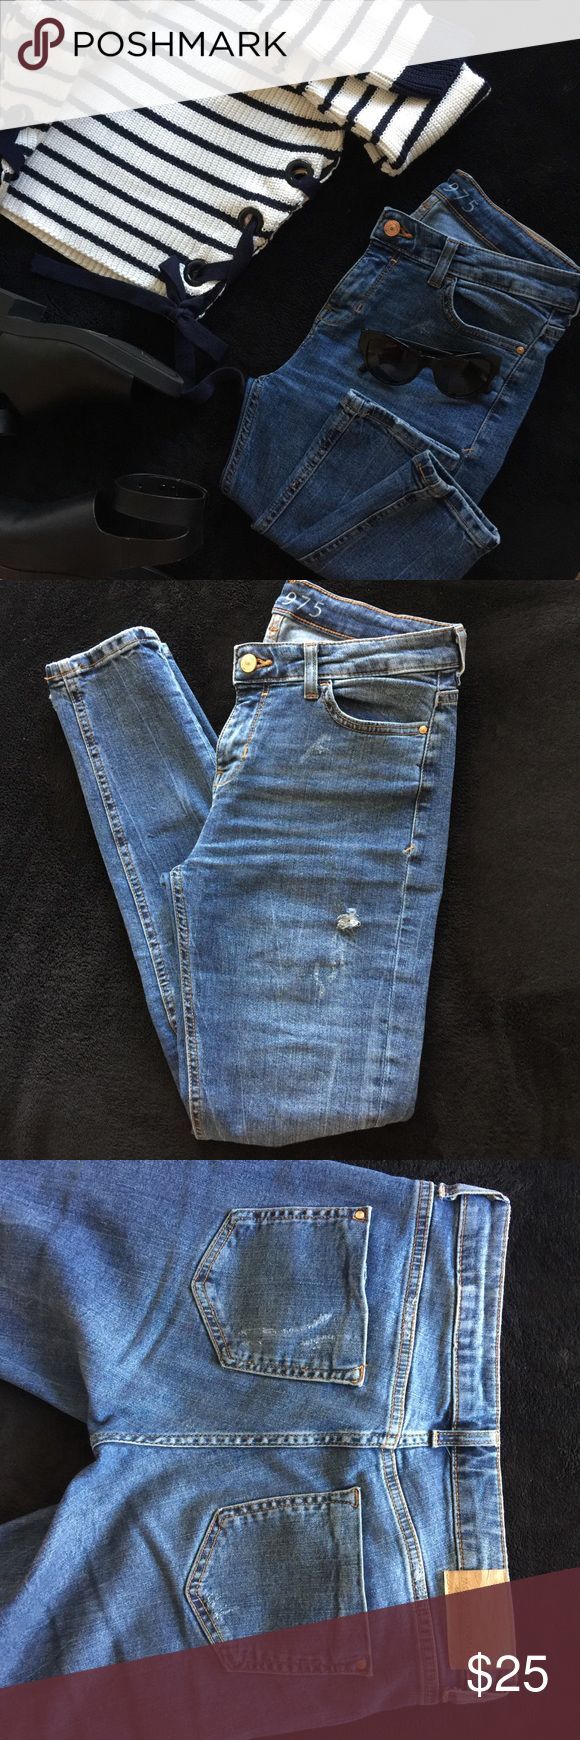 Zara Distressed Jeans Used two times, true to size, it has lots of stretch, small imperfection near the back tag, minimal distress, medium to light wash💖 Zara Jeans Skinny